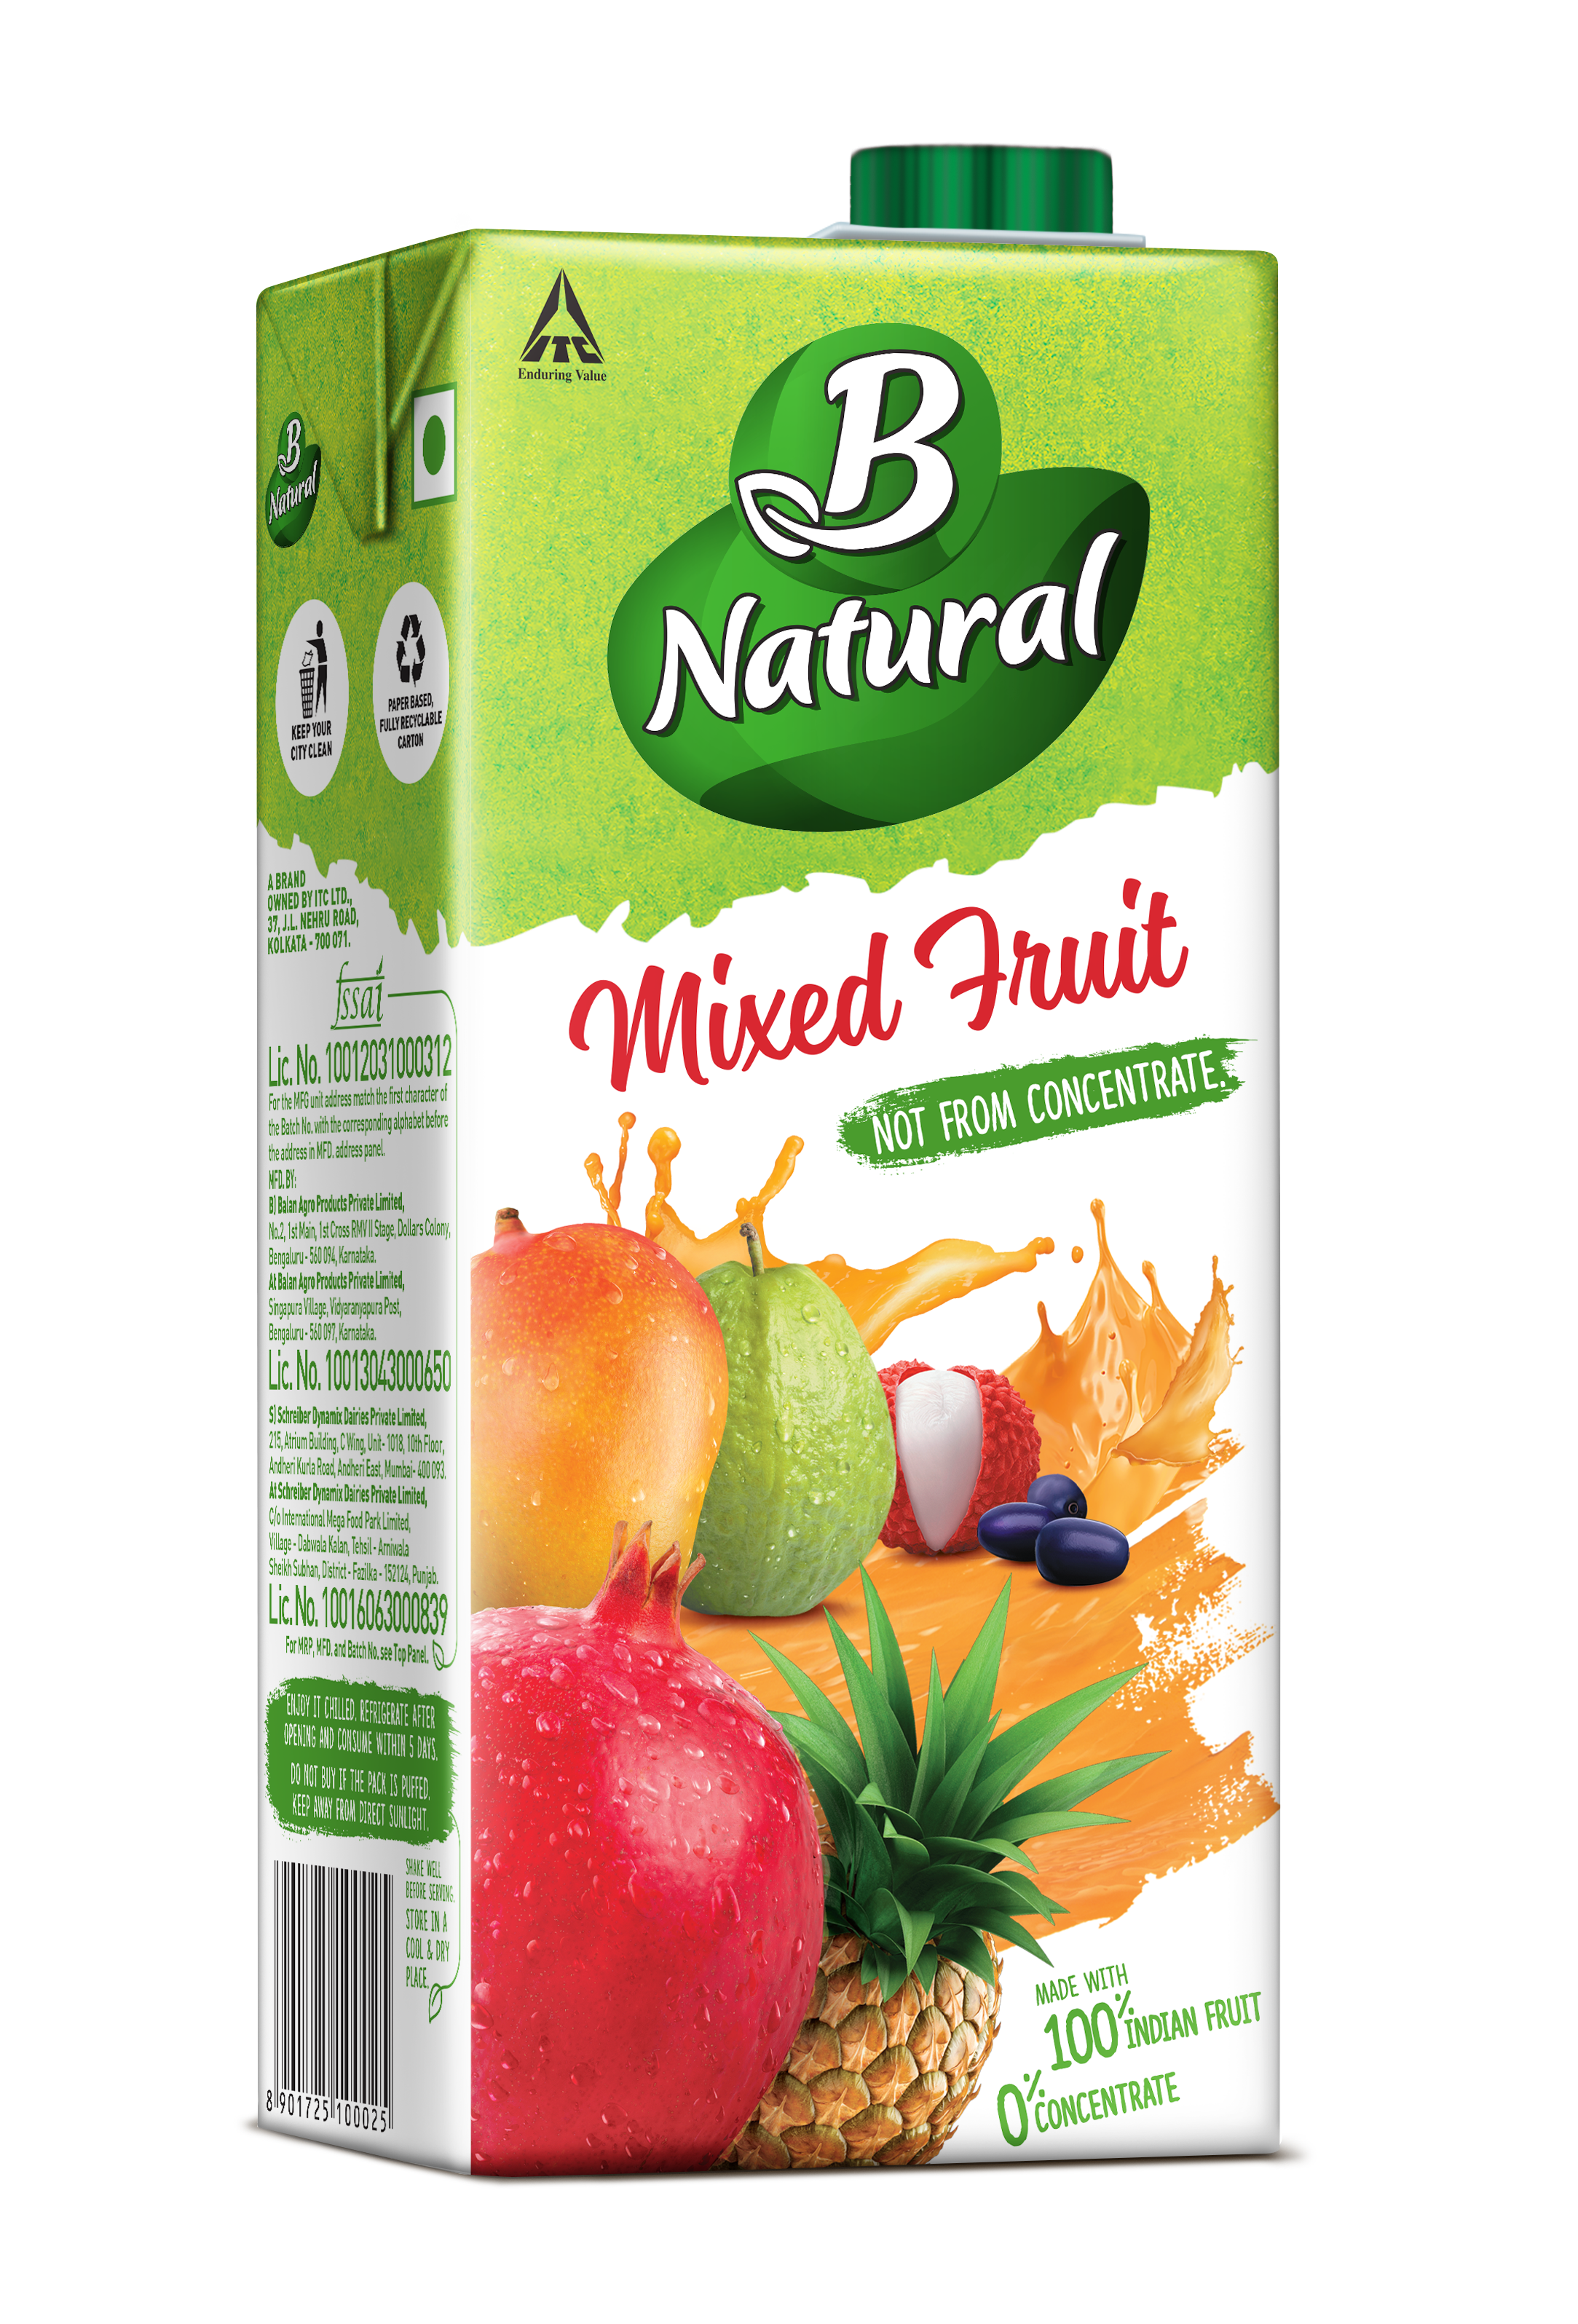 B Natural Mixed Fruit Drinks